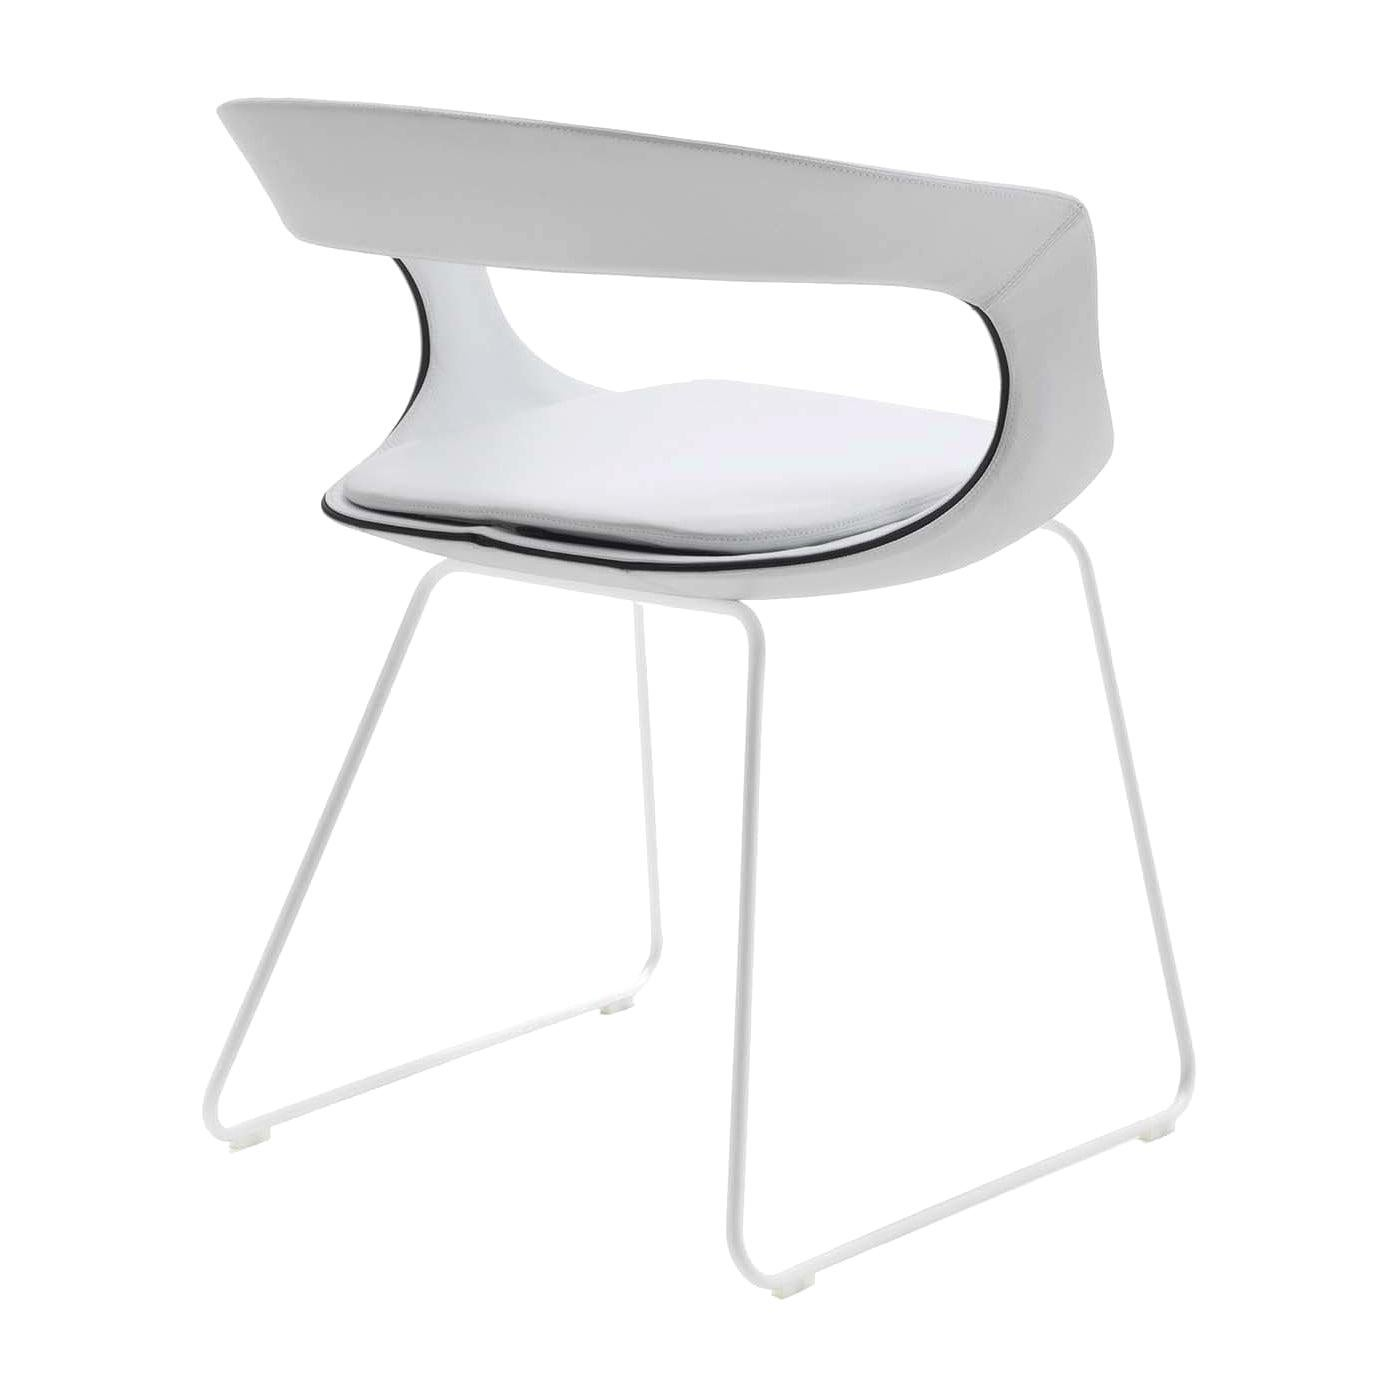 Frenchkiss Low-Backed Sled-Base Chair by Stefano Bigi